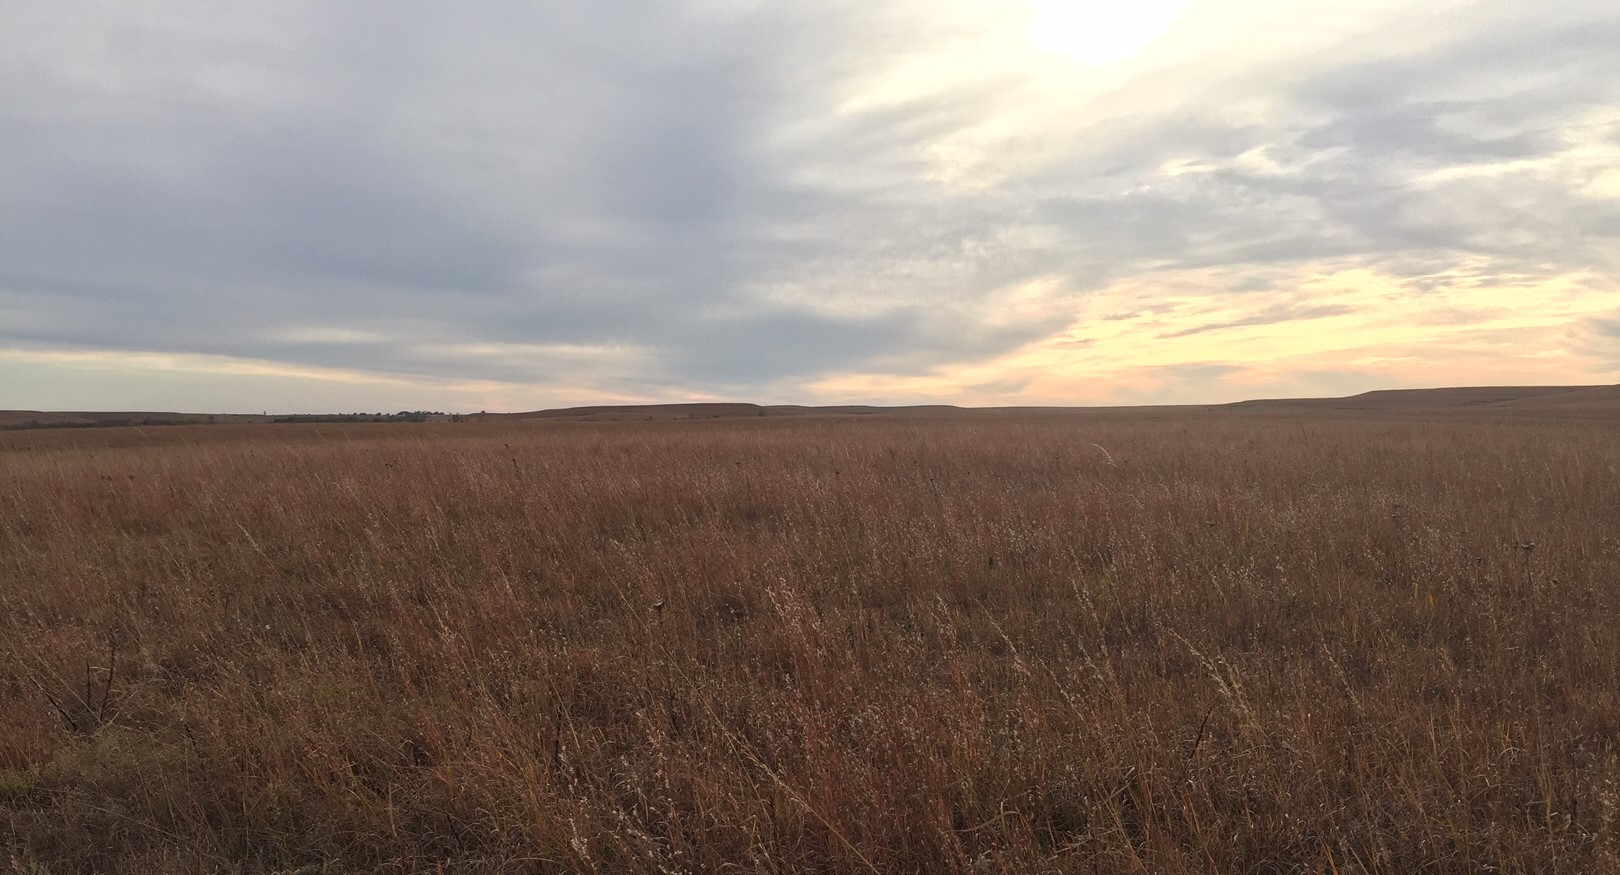 Section of the Flint Hills in Chase County, Kansas (Photo by J. Schafer)